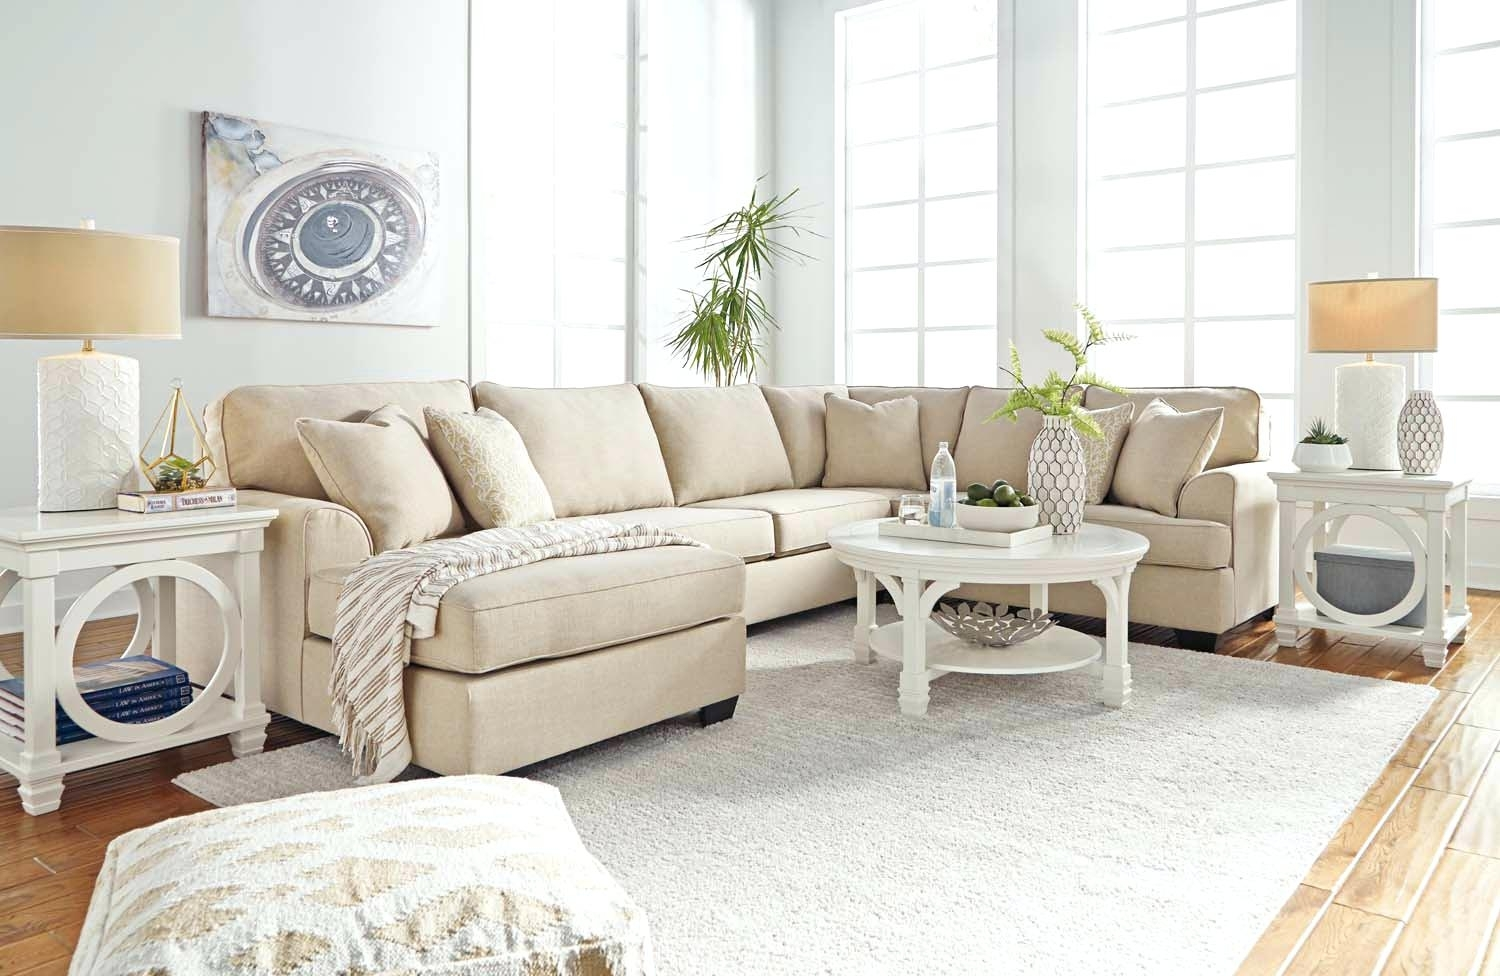 3 Piece Sectional Haven Blue Steel 3 Piece Sectional 3 Pc Reclining regarding Haven Blue Steel 3 Piece Sectionals (Image 4 of 30)